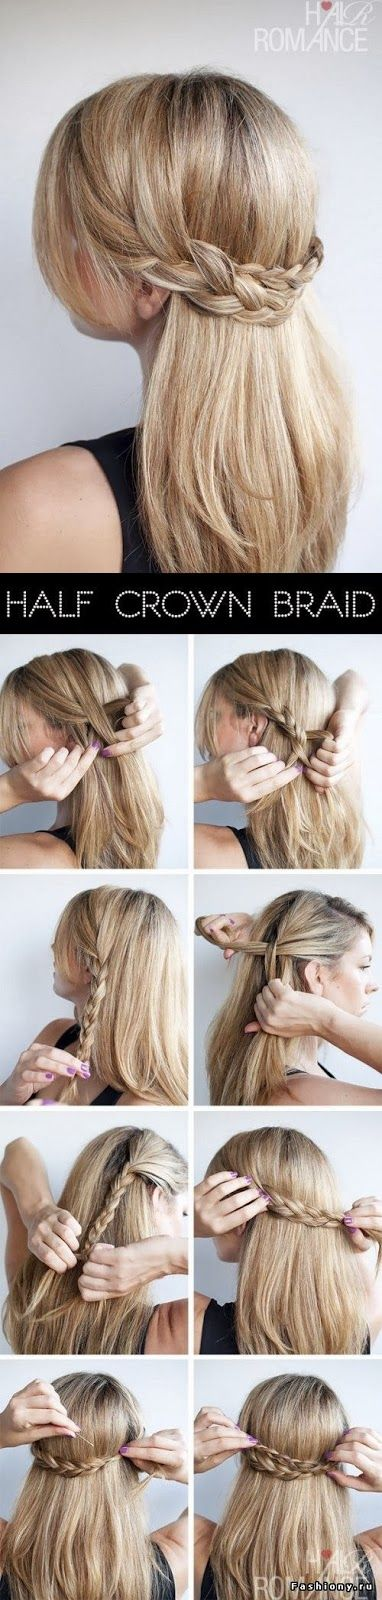 women's style 2013: Hm, think I will have to try braiding on the side of my head. Wonder if my hands can learn new tricks?